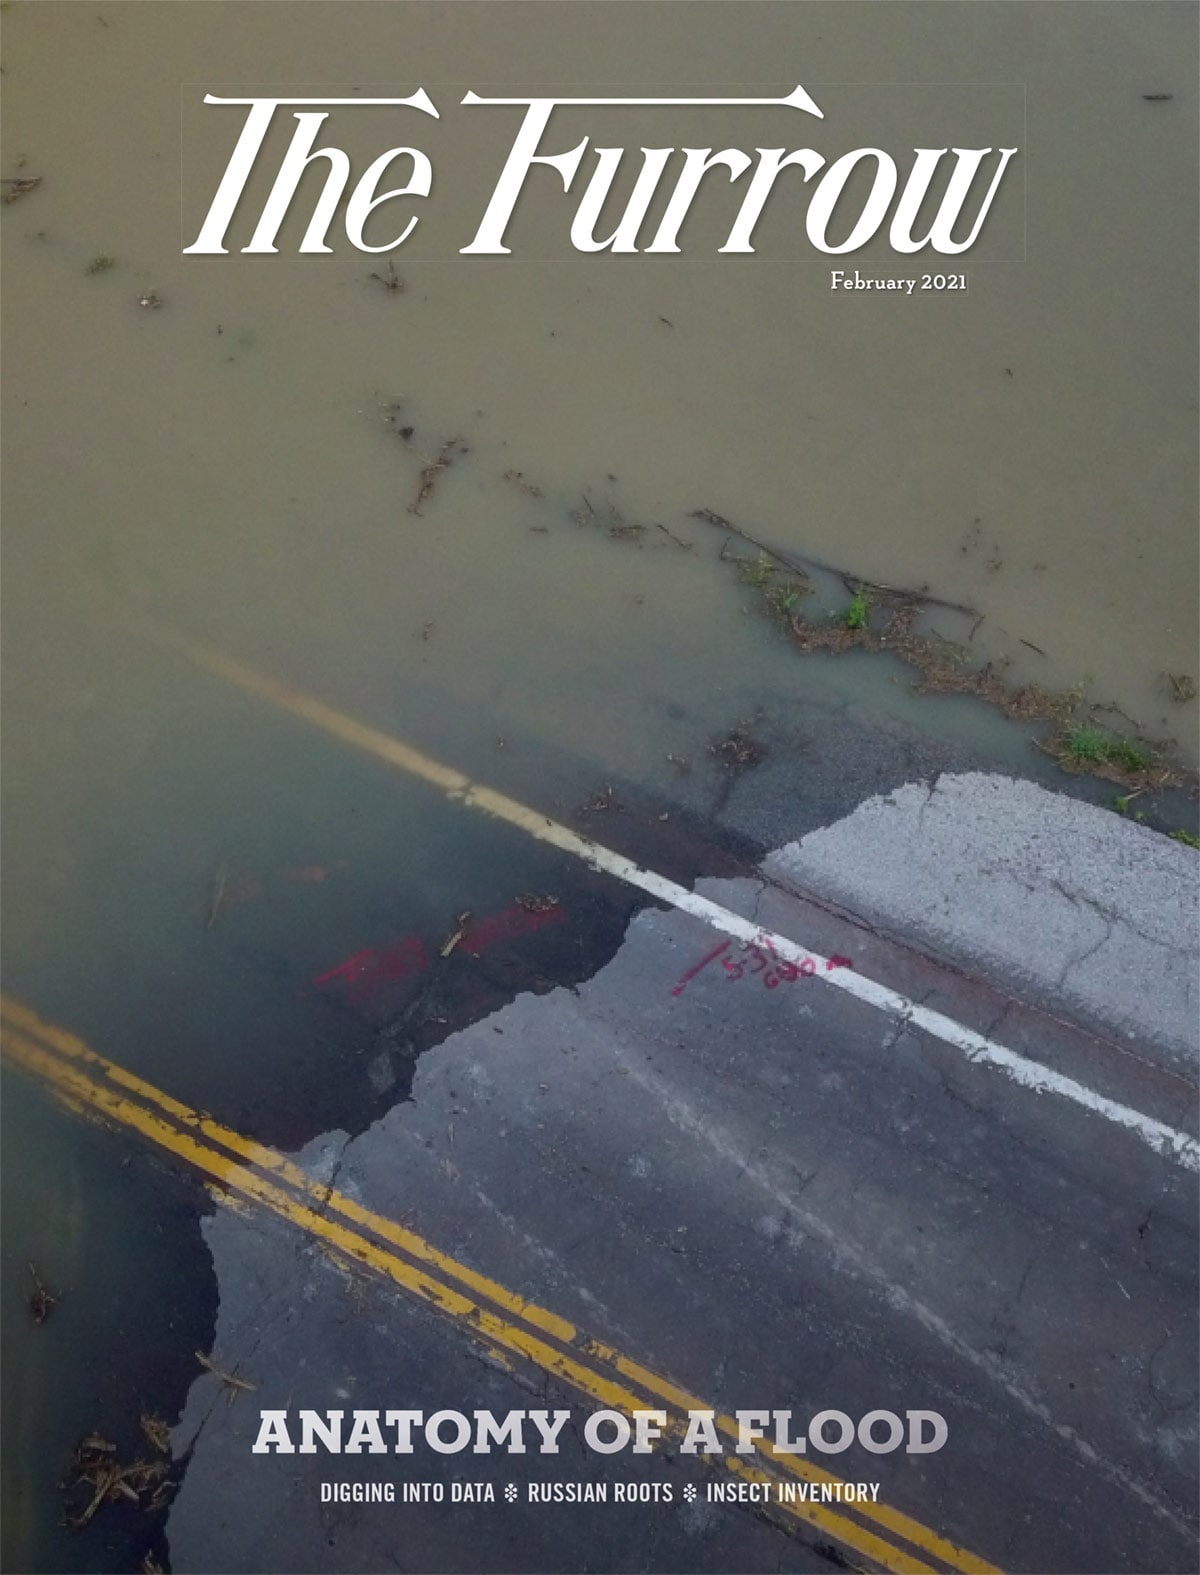 The Furrow February 2021